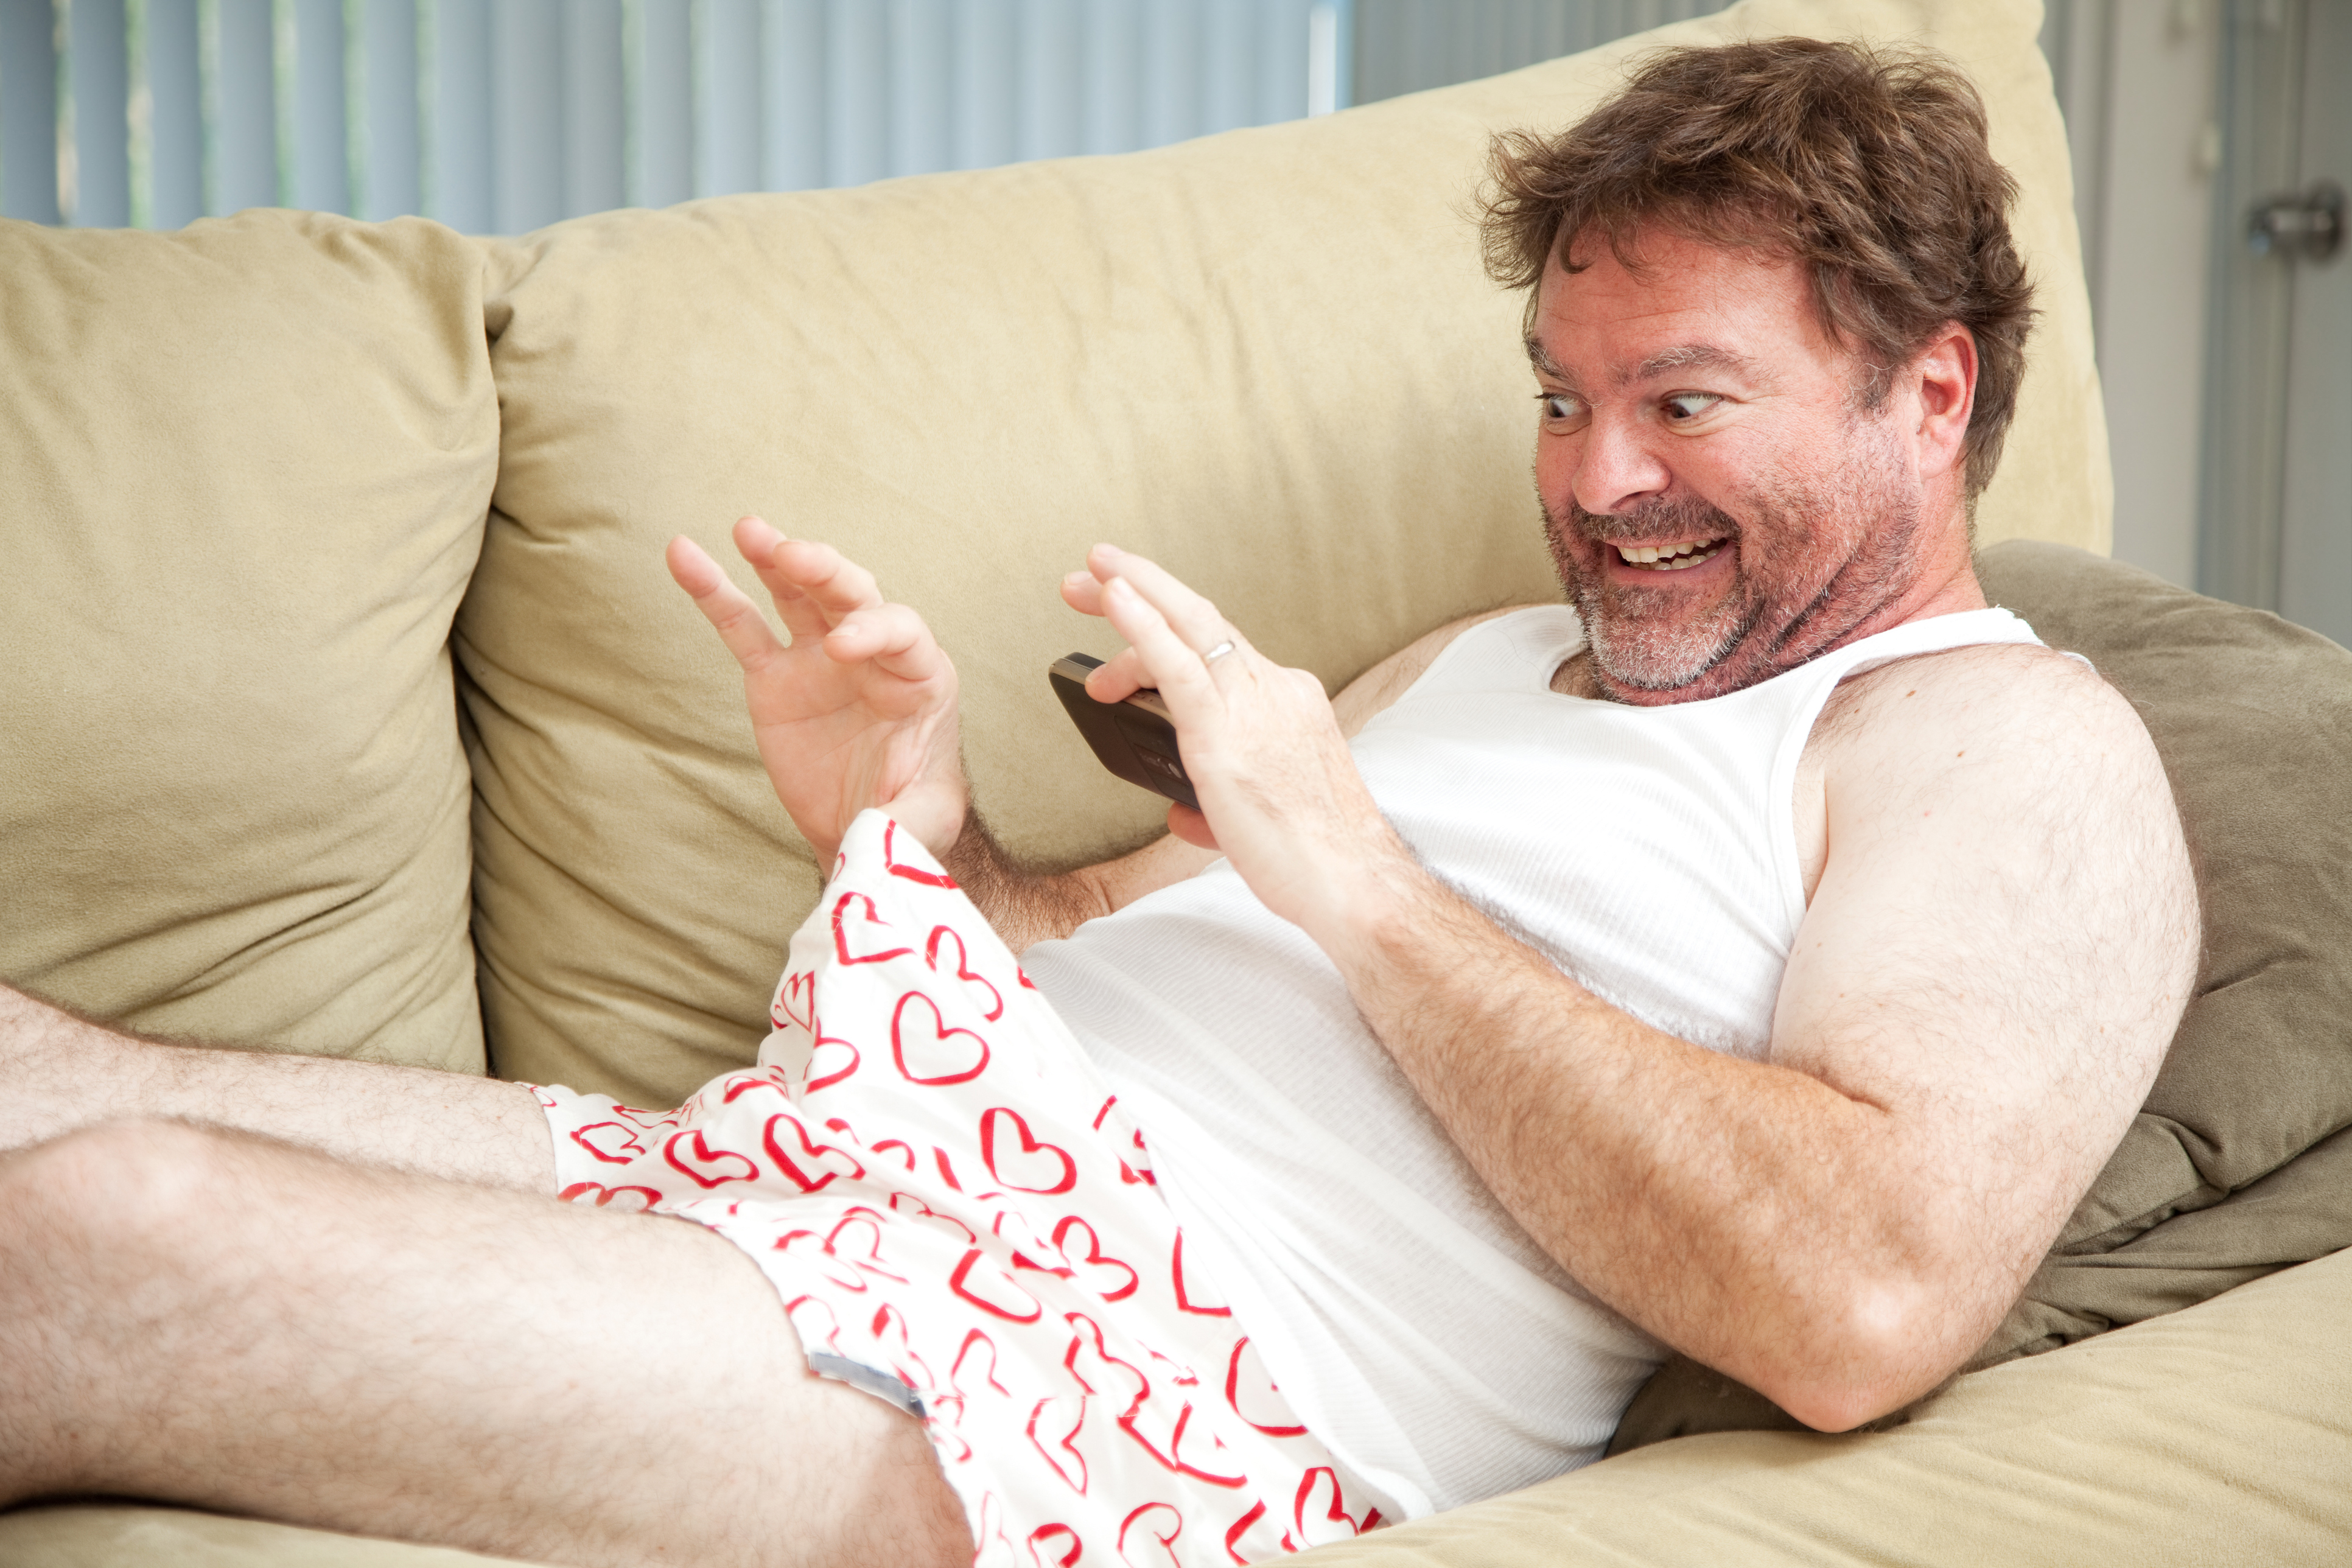 Online Dating: How To Avoid Unsolicited PP Pics?